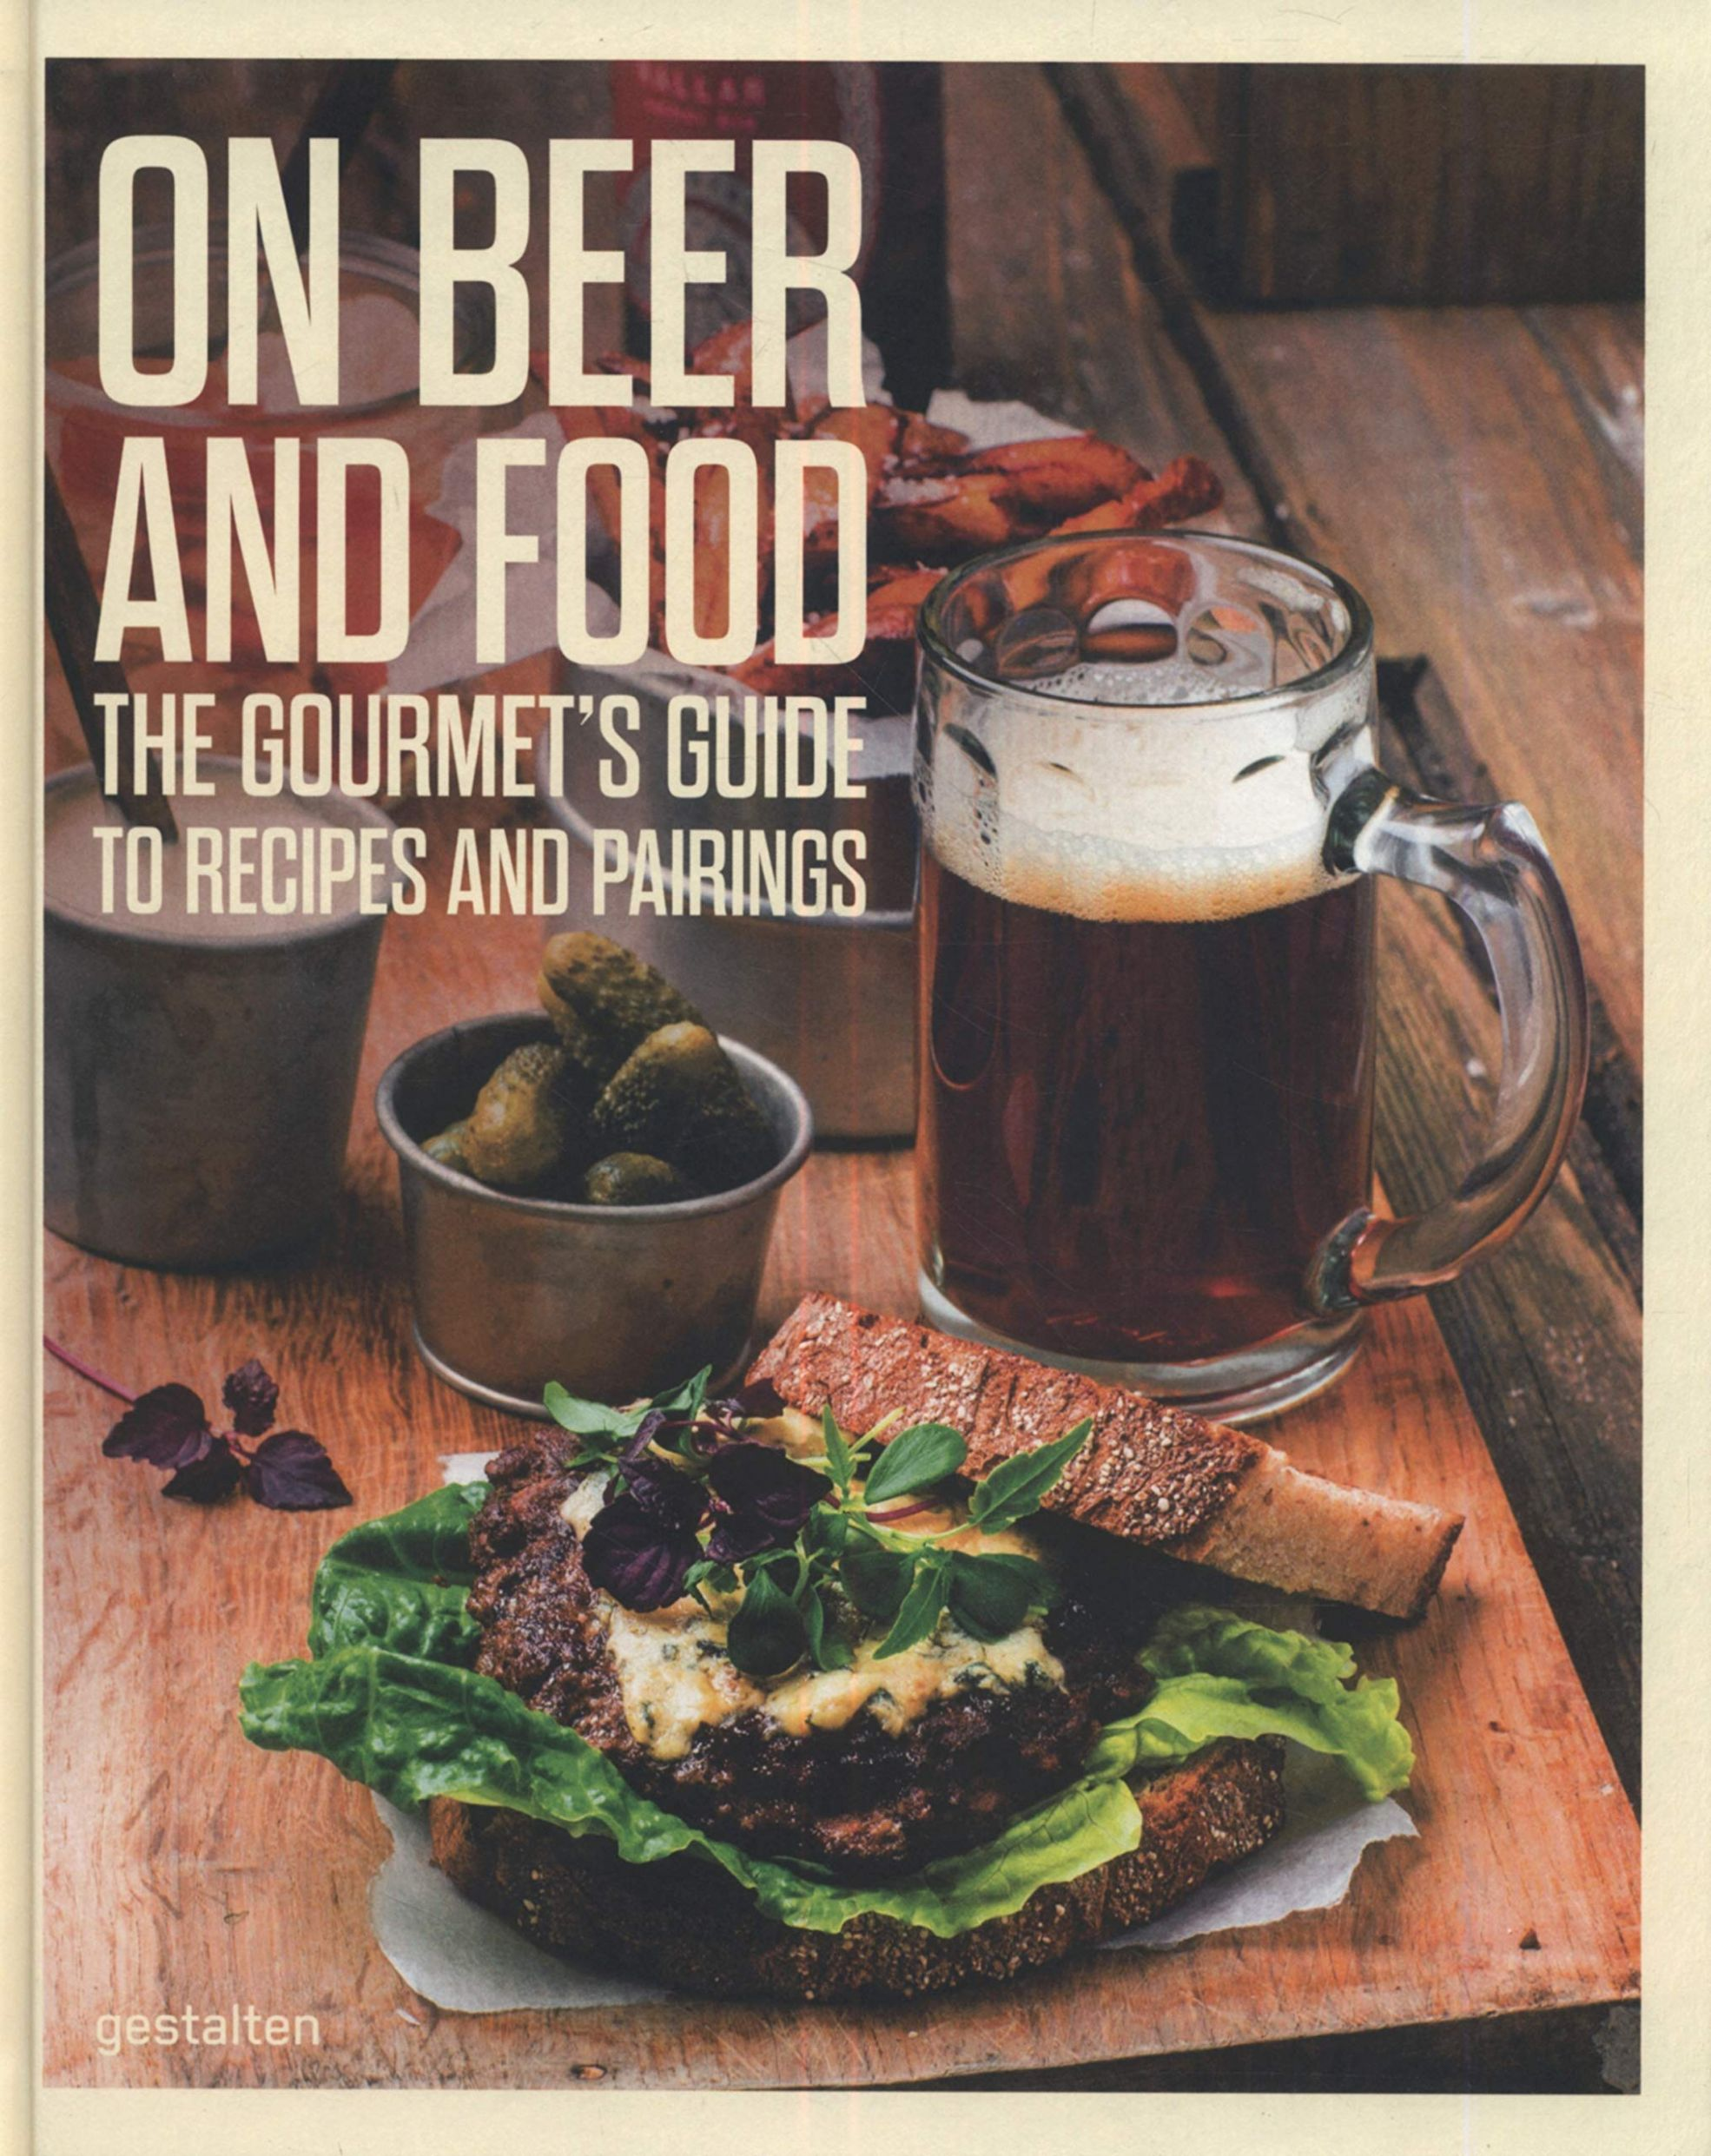 On Beer and Food: The Gourmet's Guide to Recipes and Pairings ...